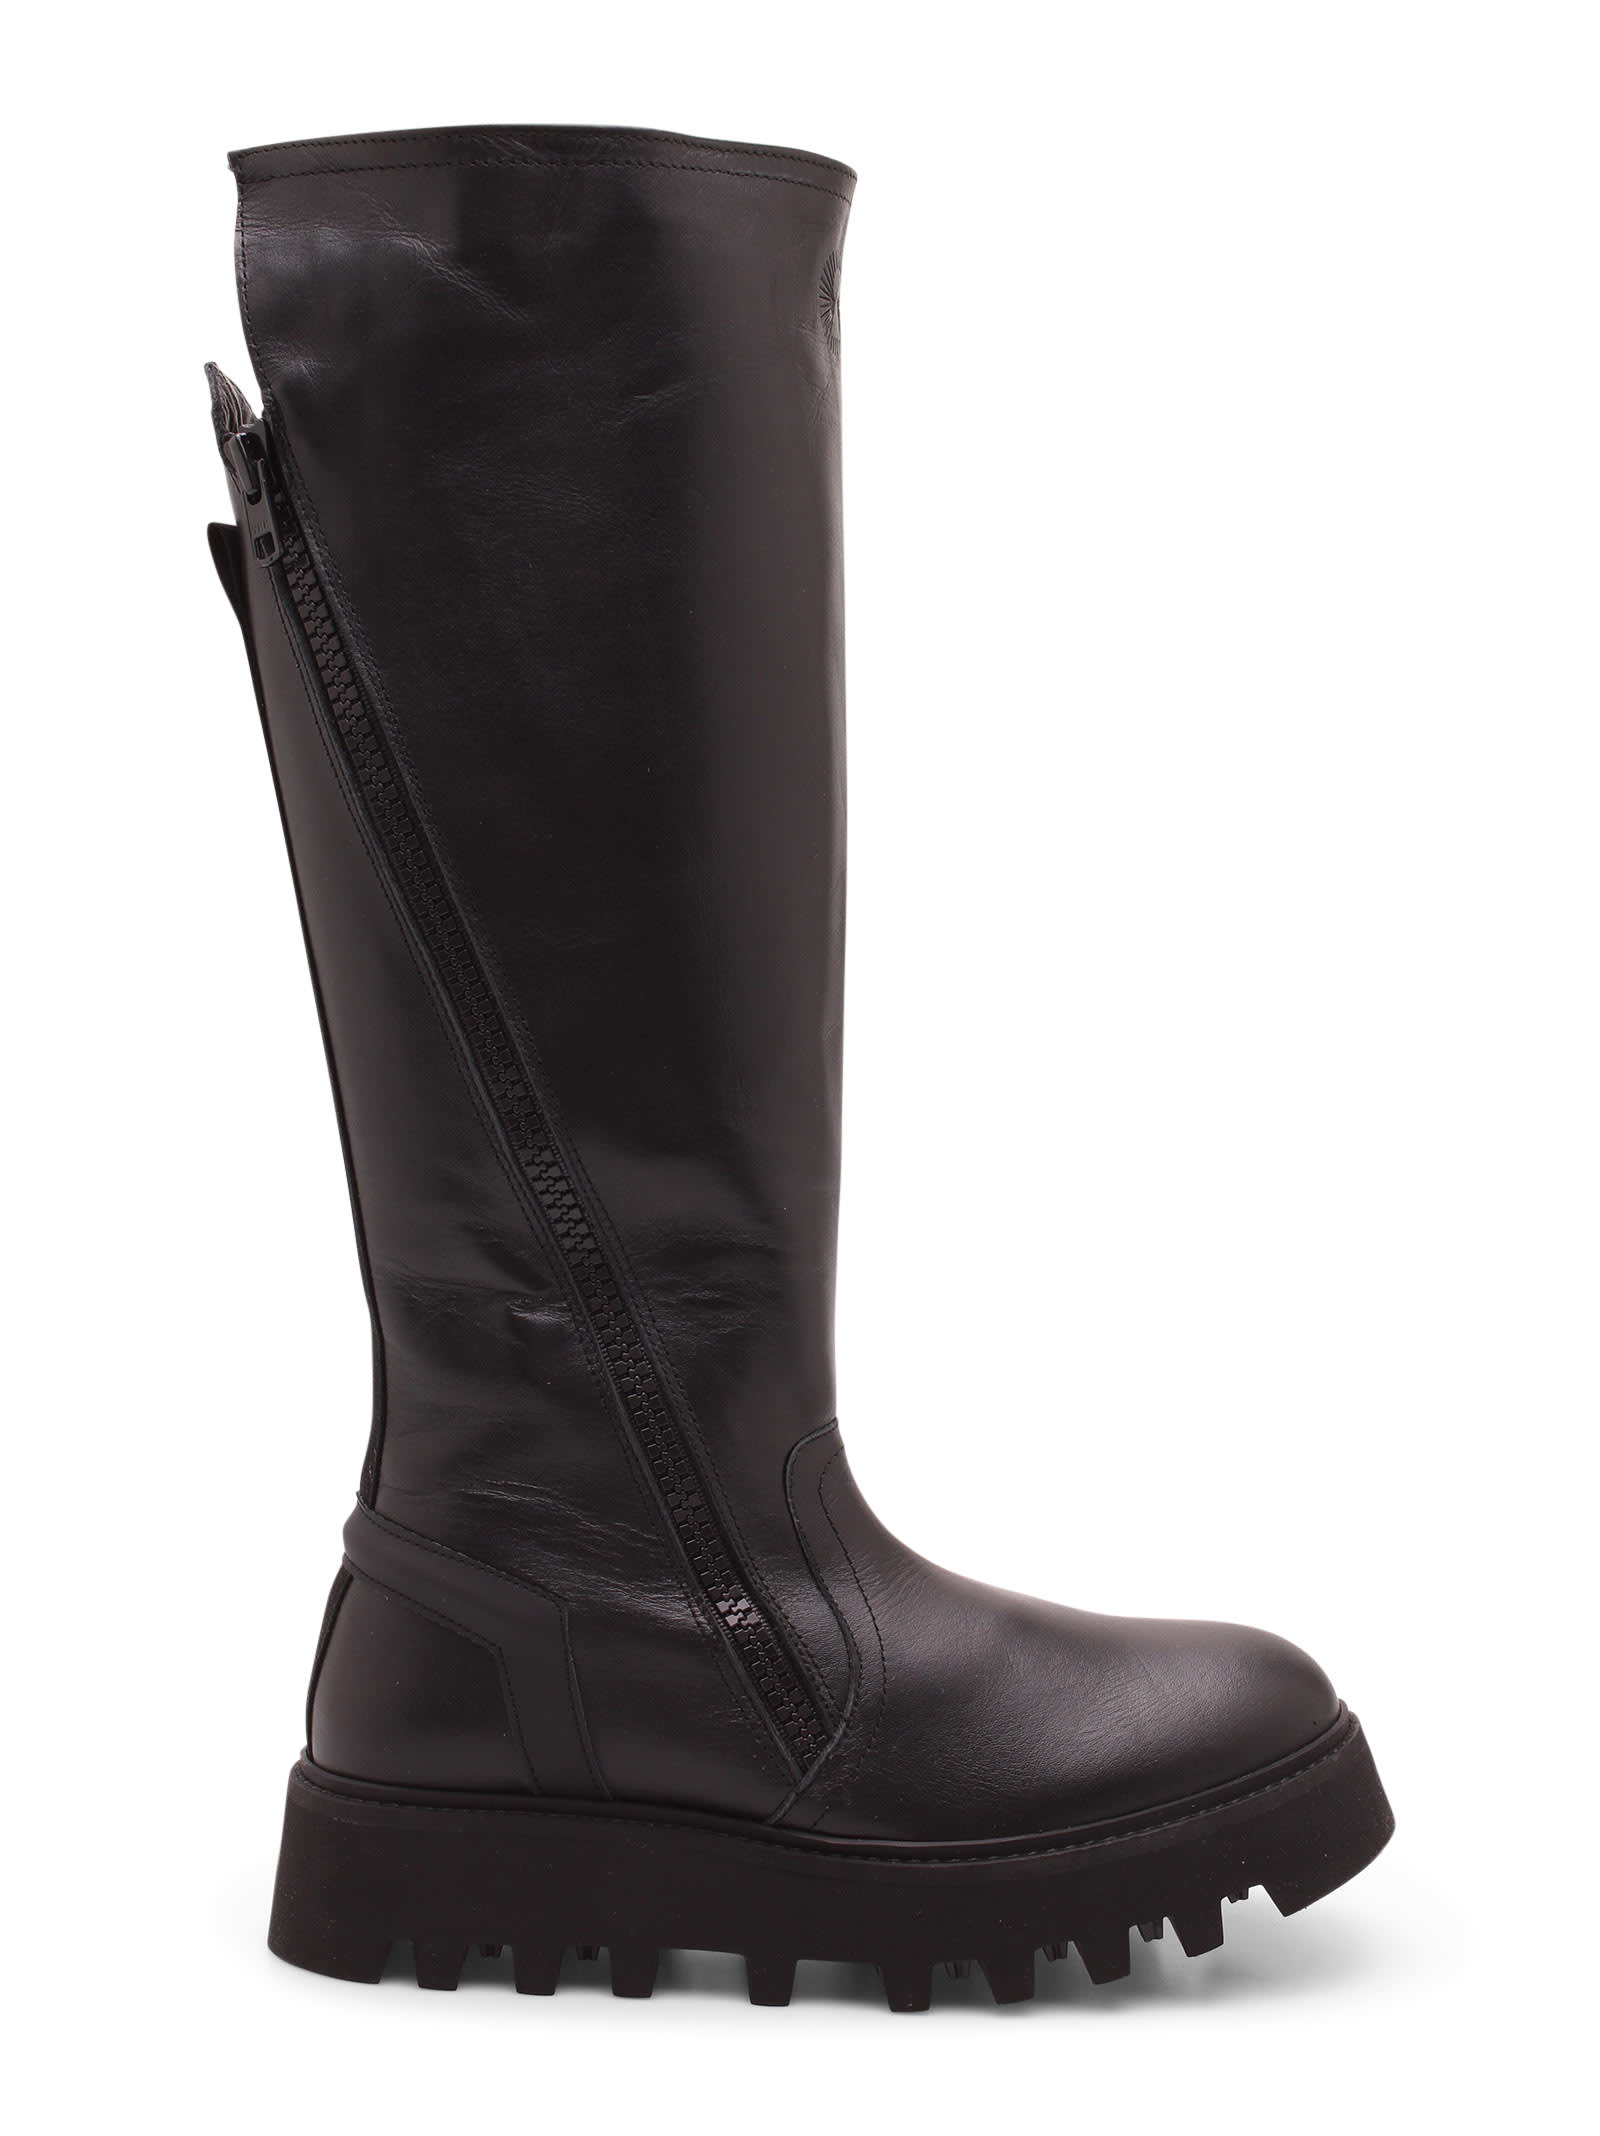 finger Calf Leather Boots